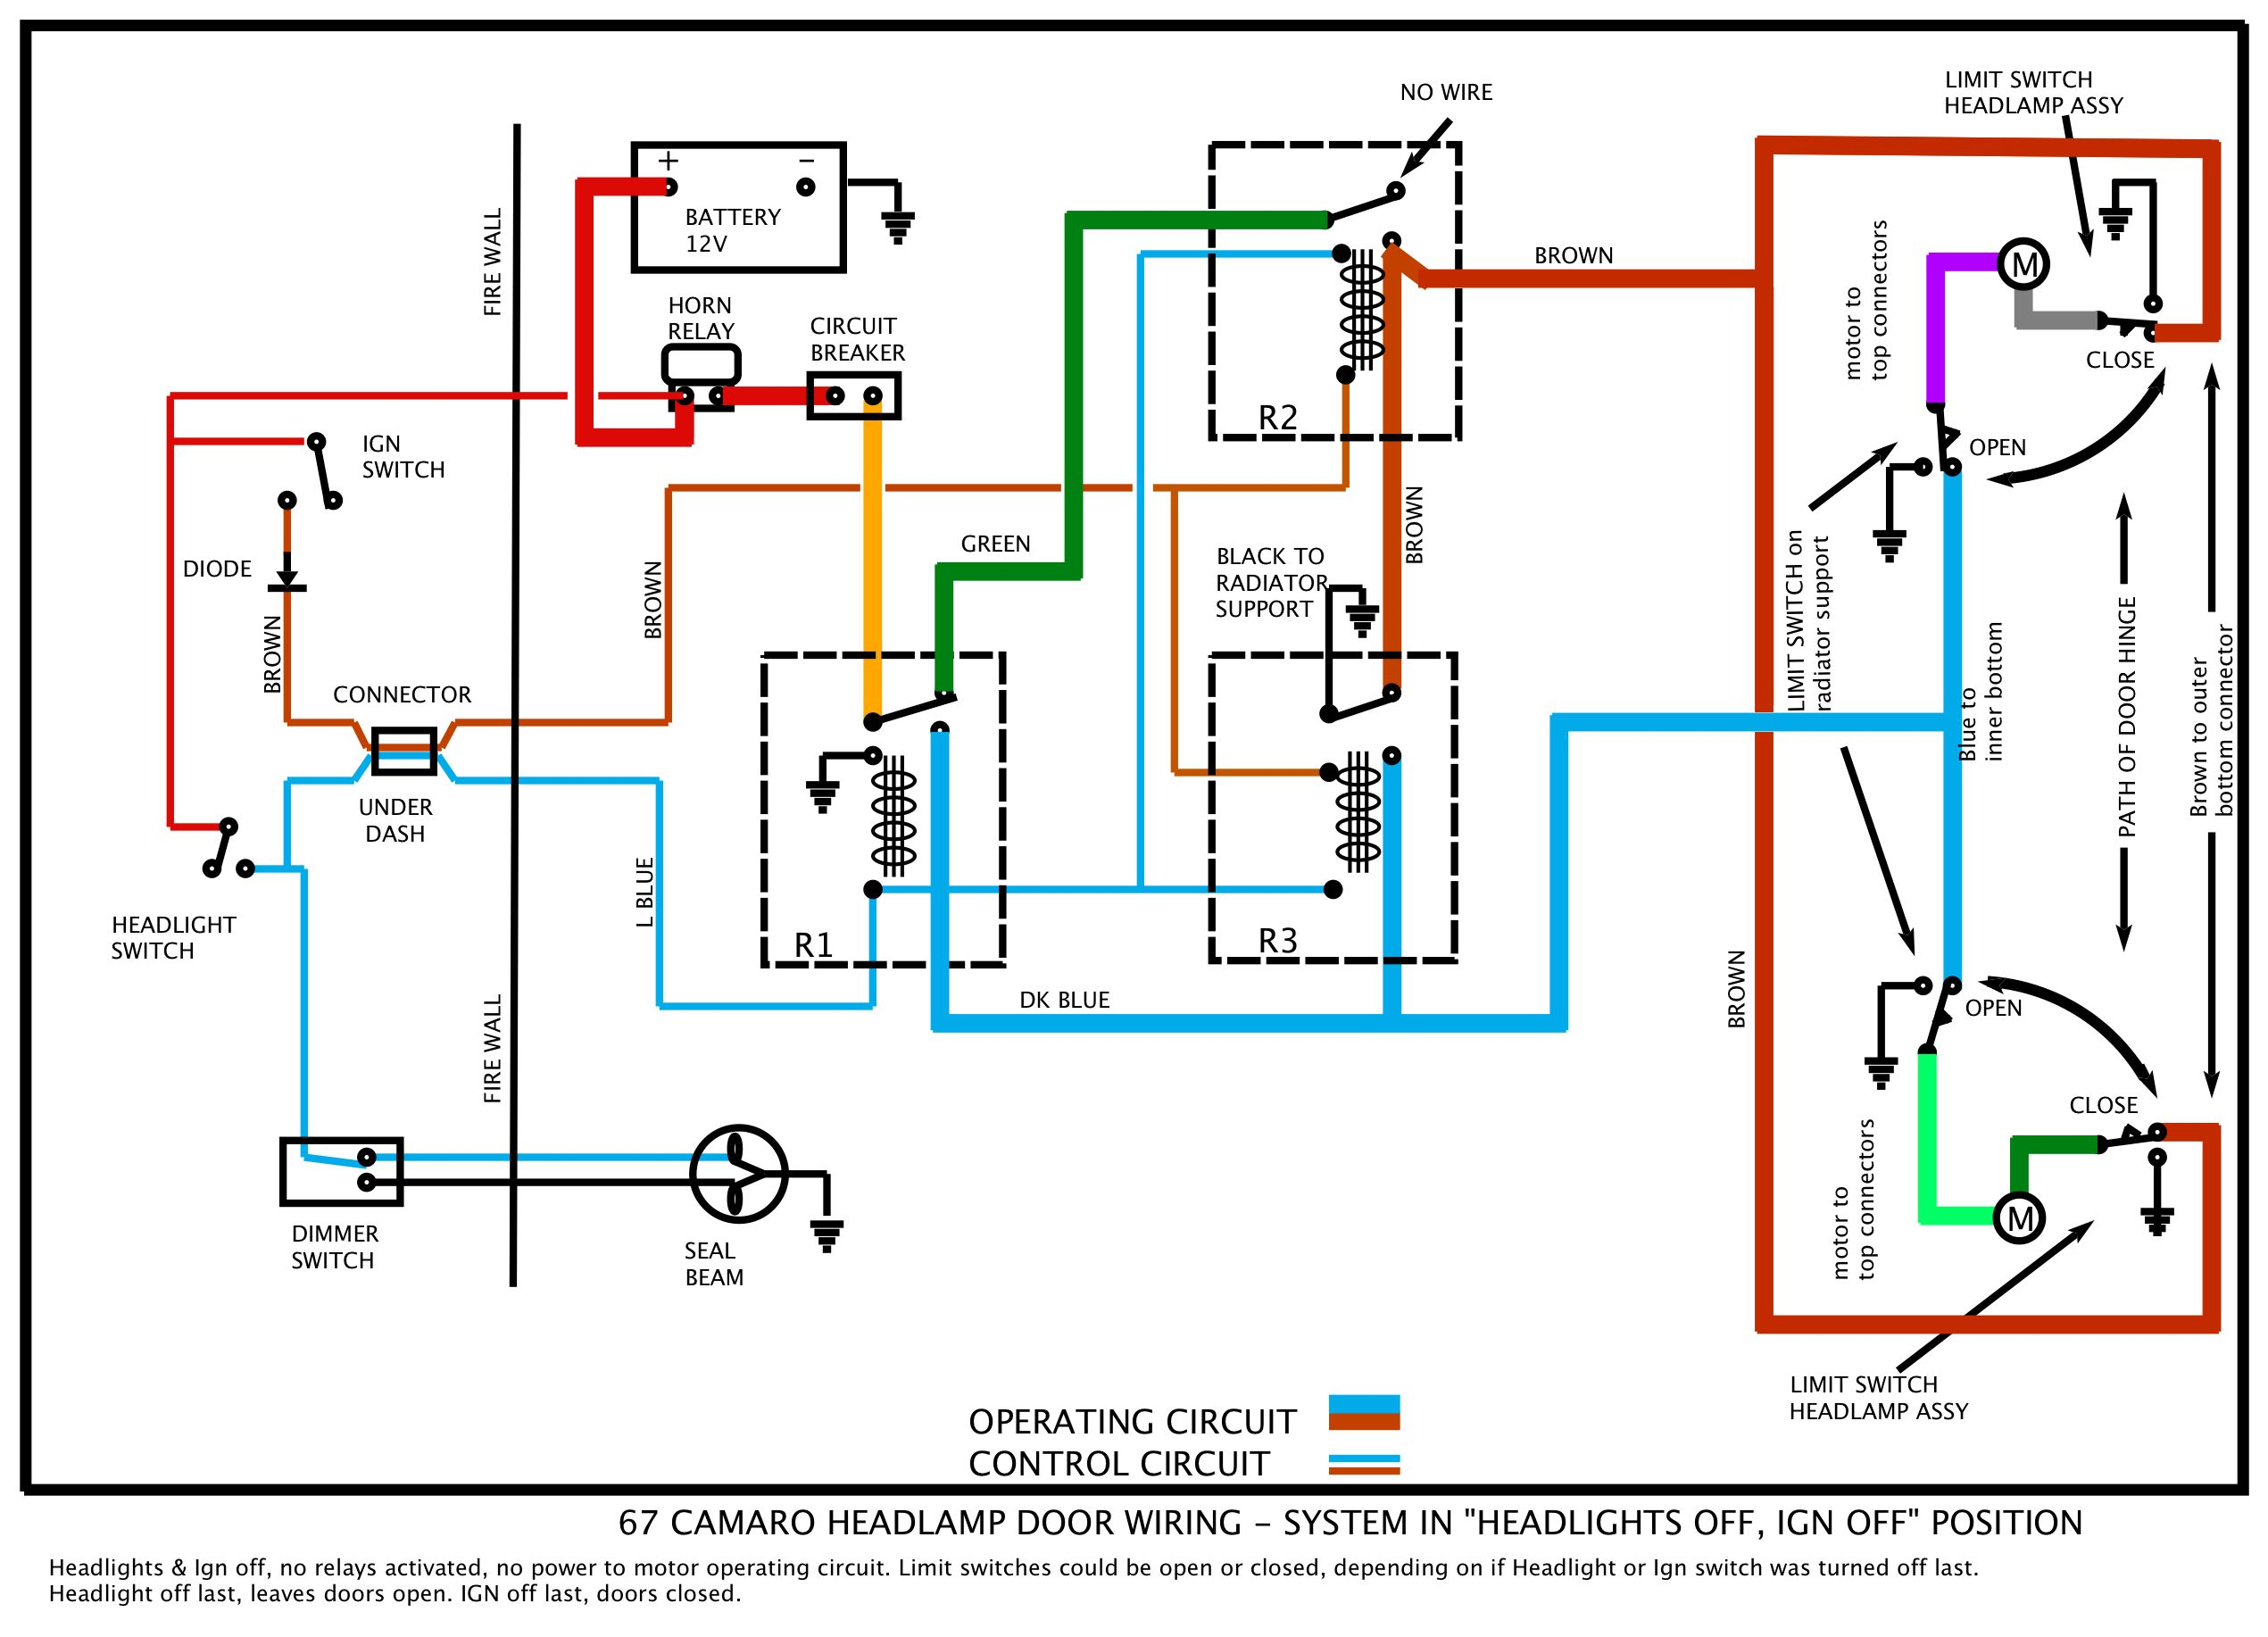 67 Camaro RS Headlight wiring diagram by David color